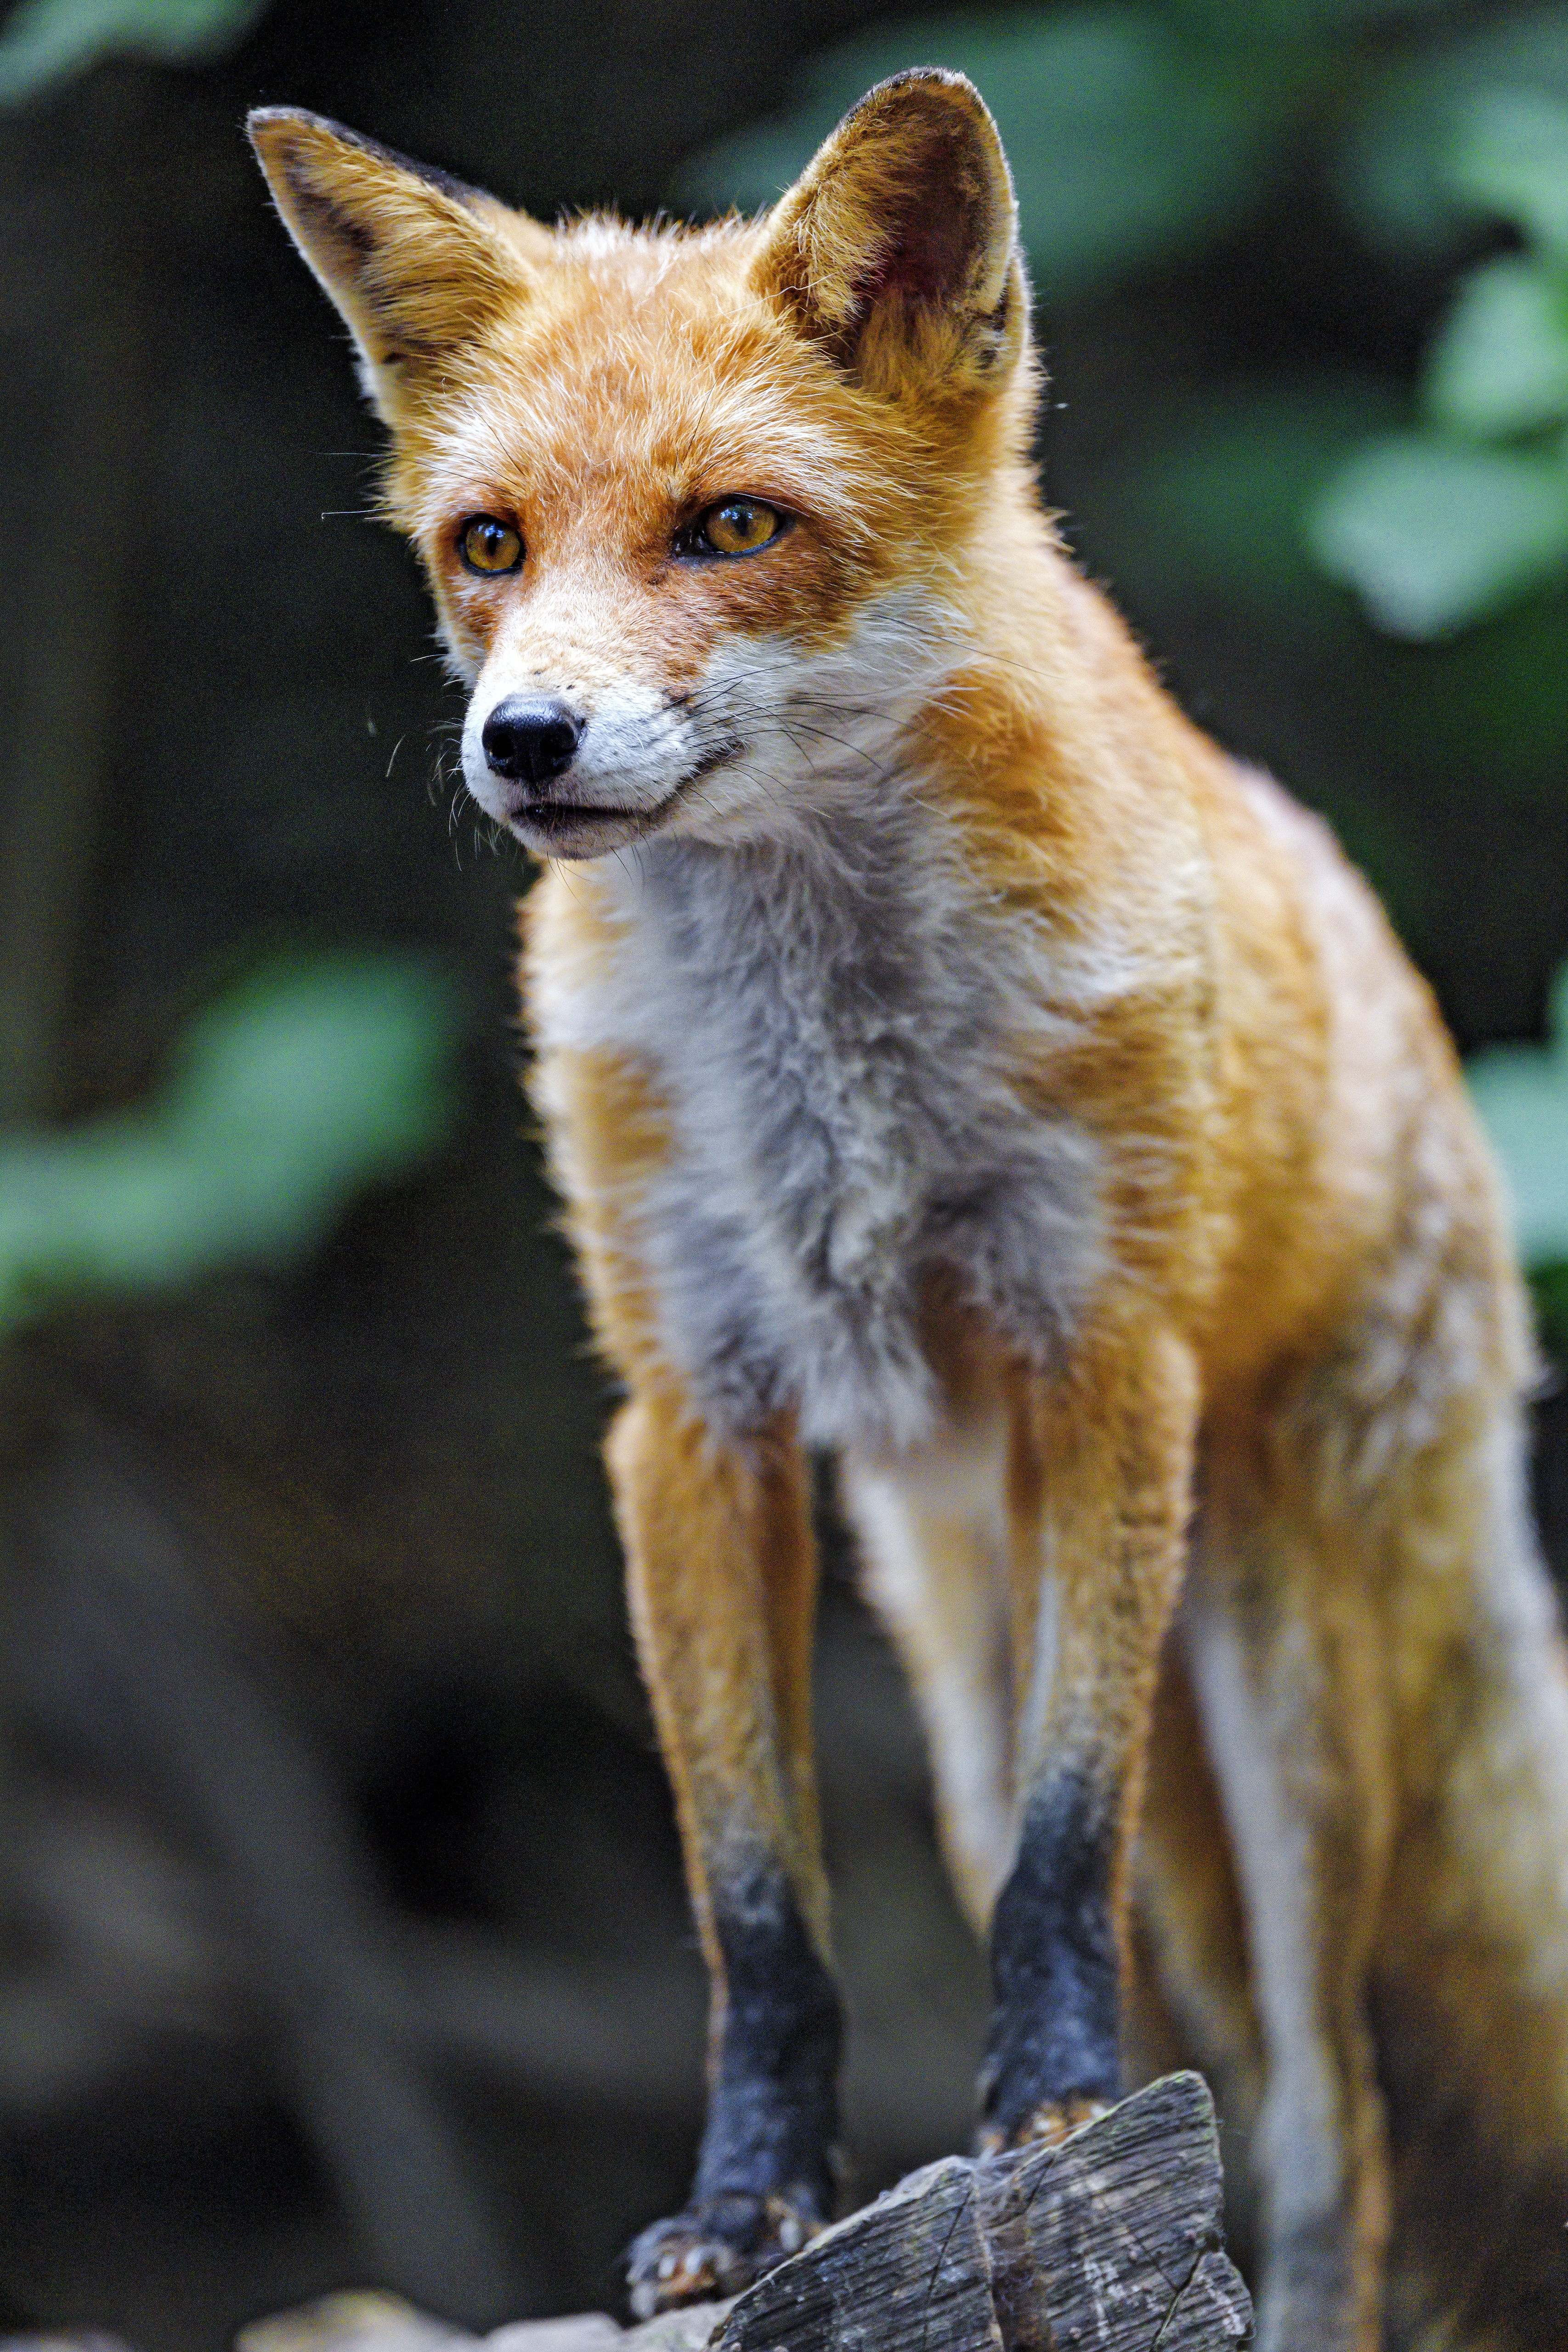 75107 download wallpaper Animals, Fox, Predator, Sight, Opinion, Animal, Redhead screensavers and pictures for free